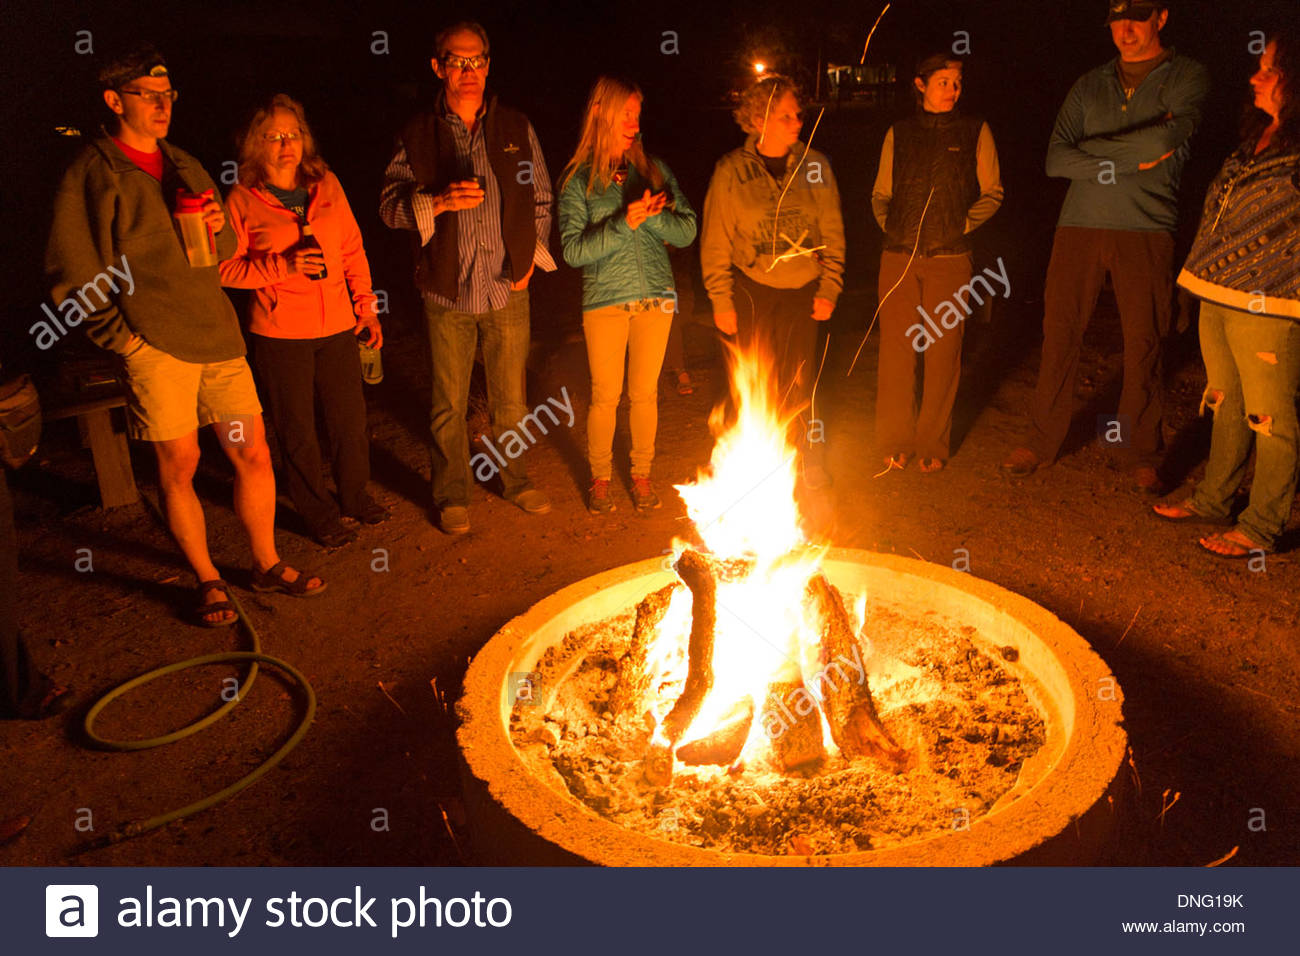 Backroads Singles-Solos Trip Evening Campfire at Thunderbird Ranch, Healdsburg, California - Stock Image